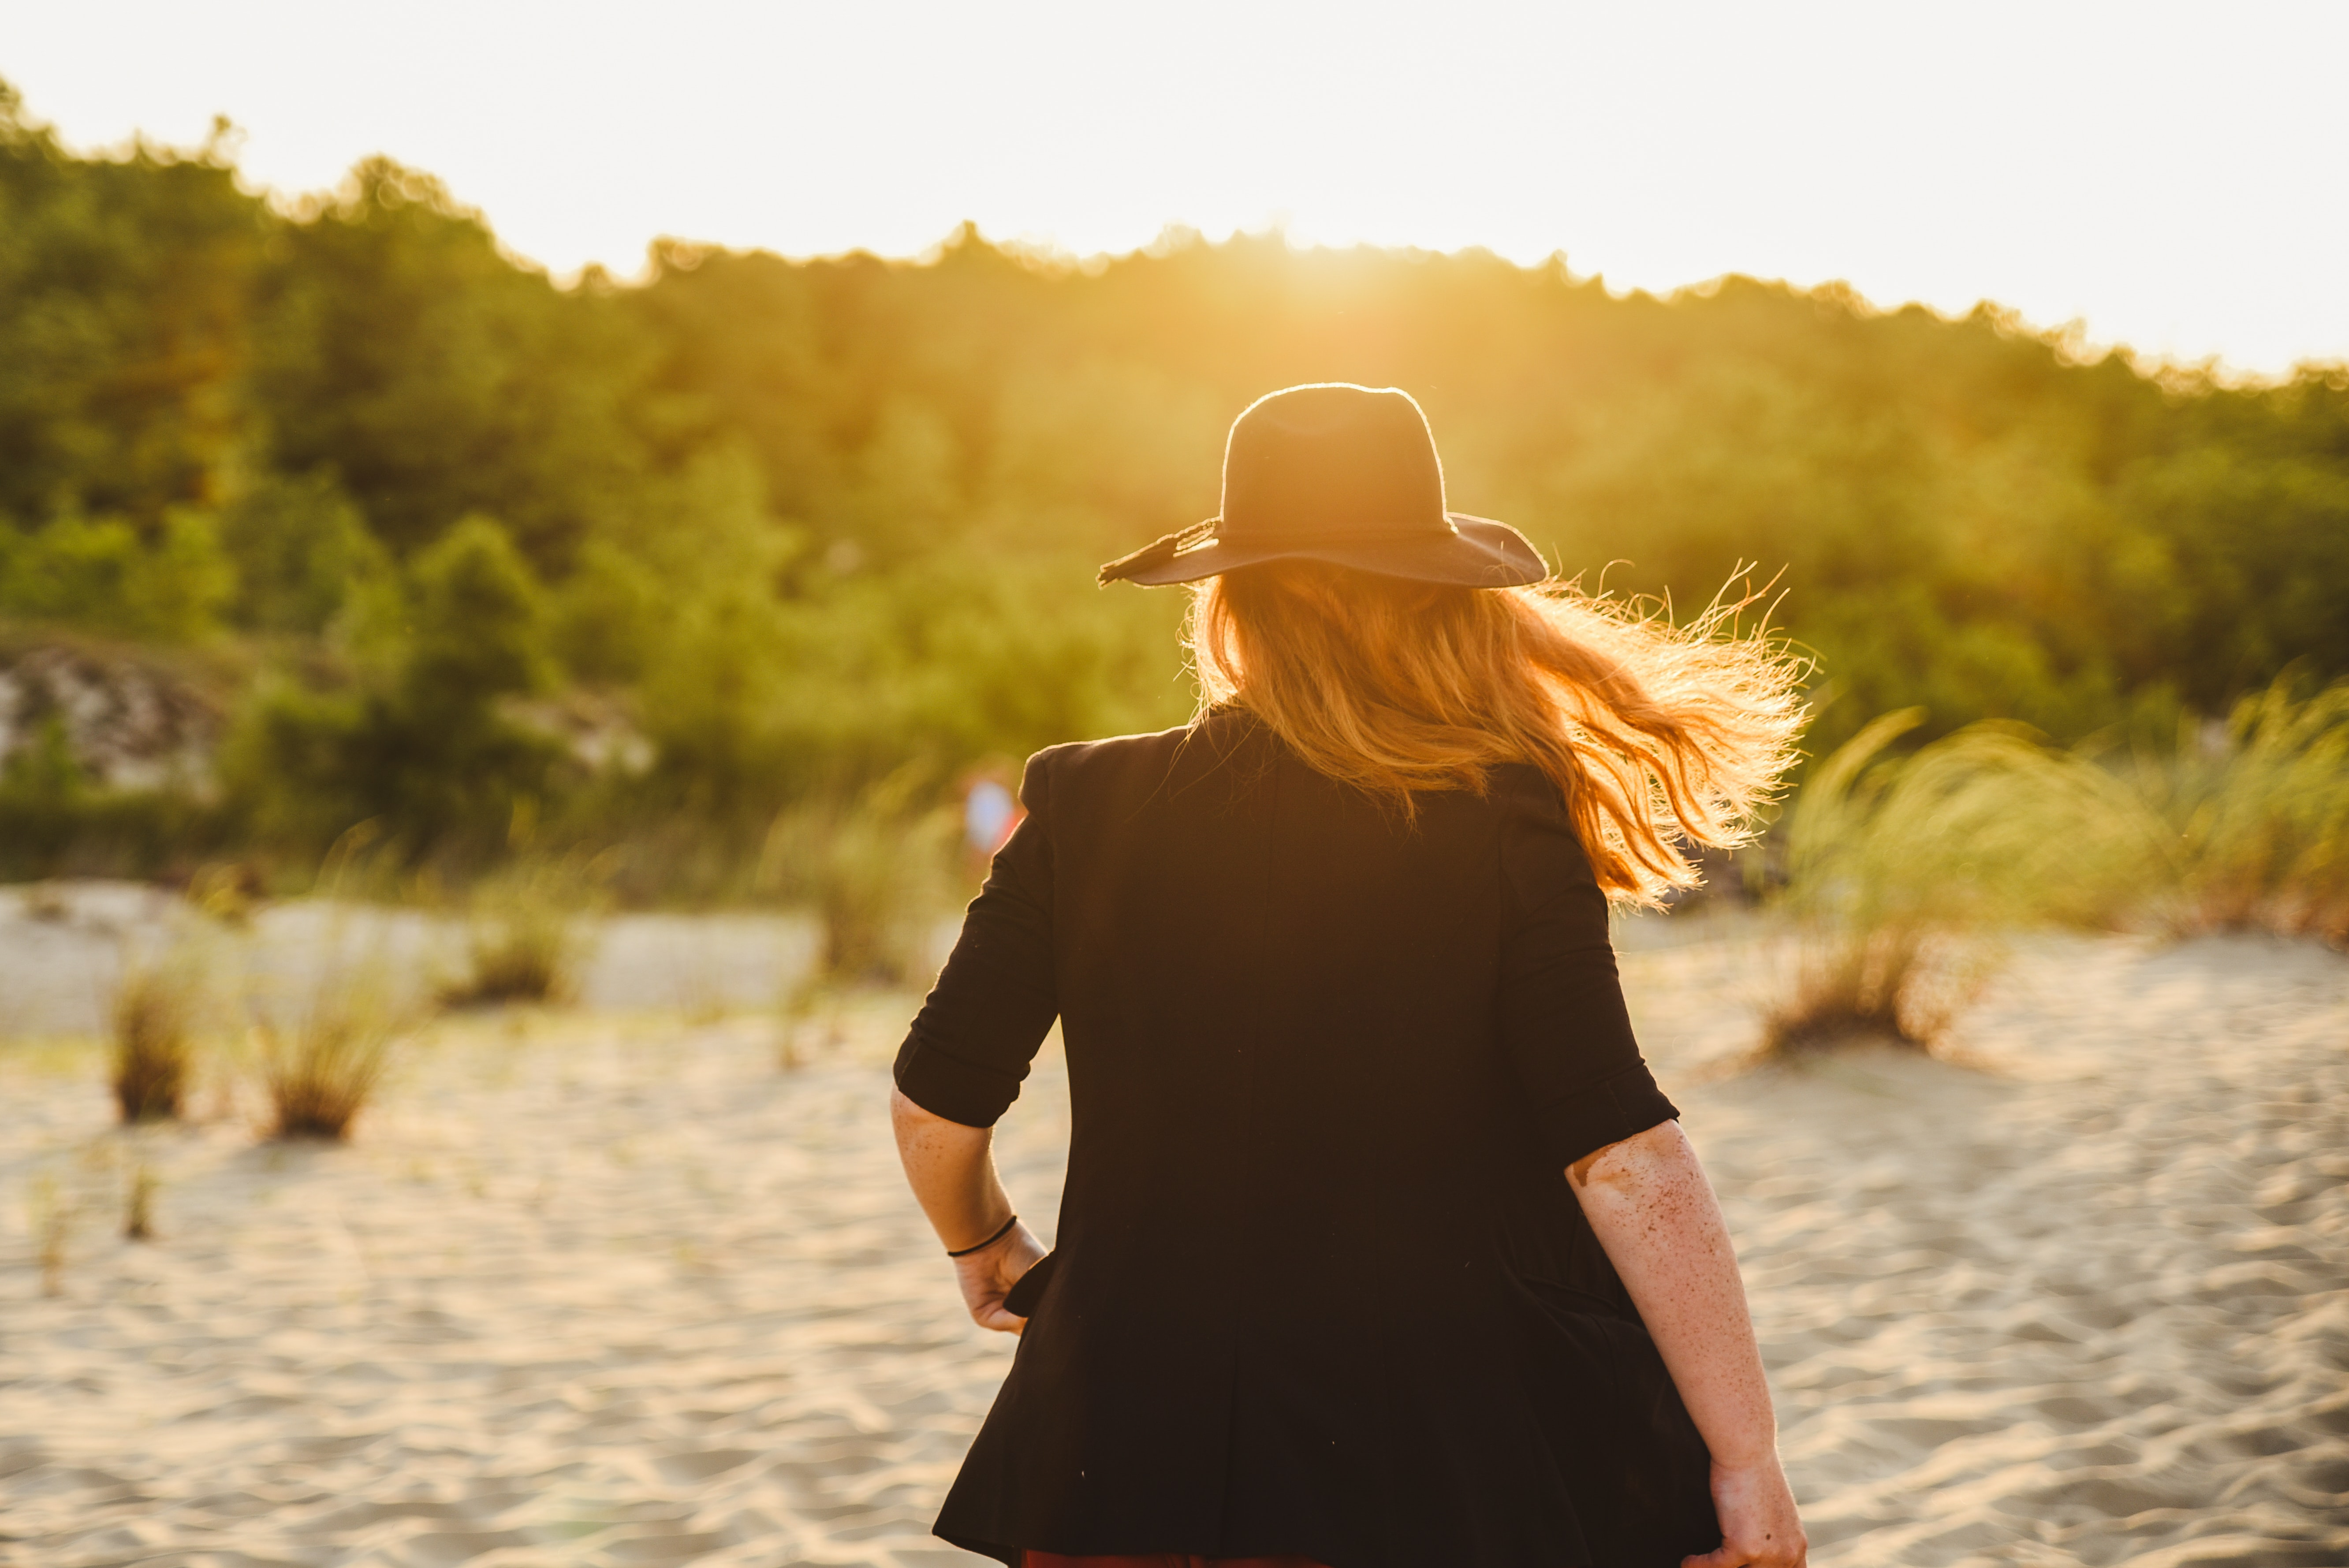 The 10 things I wish I'd known when I left an abusive relationship